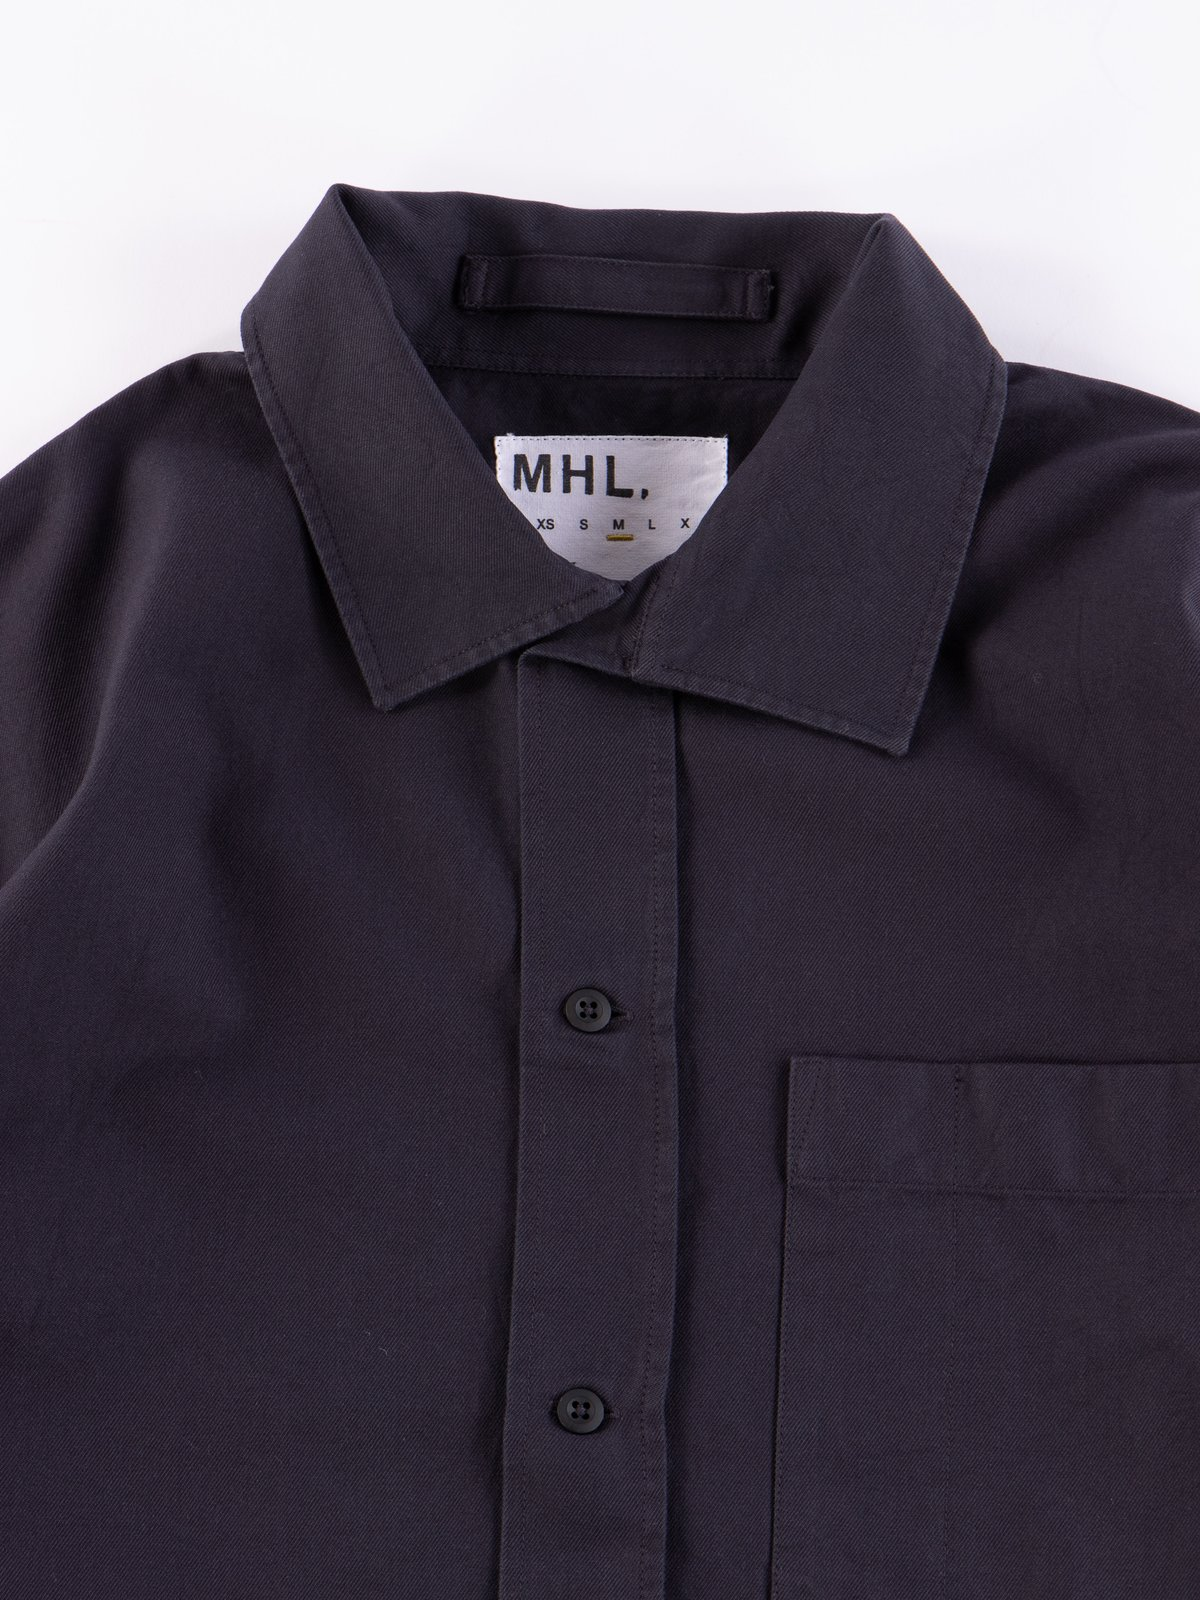 MHL Charcoal Asymmetric Collar Shirt - Image 3